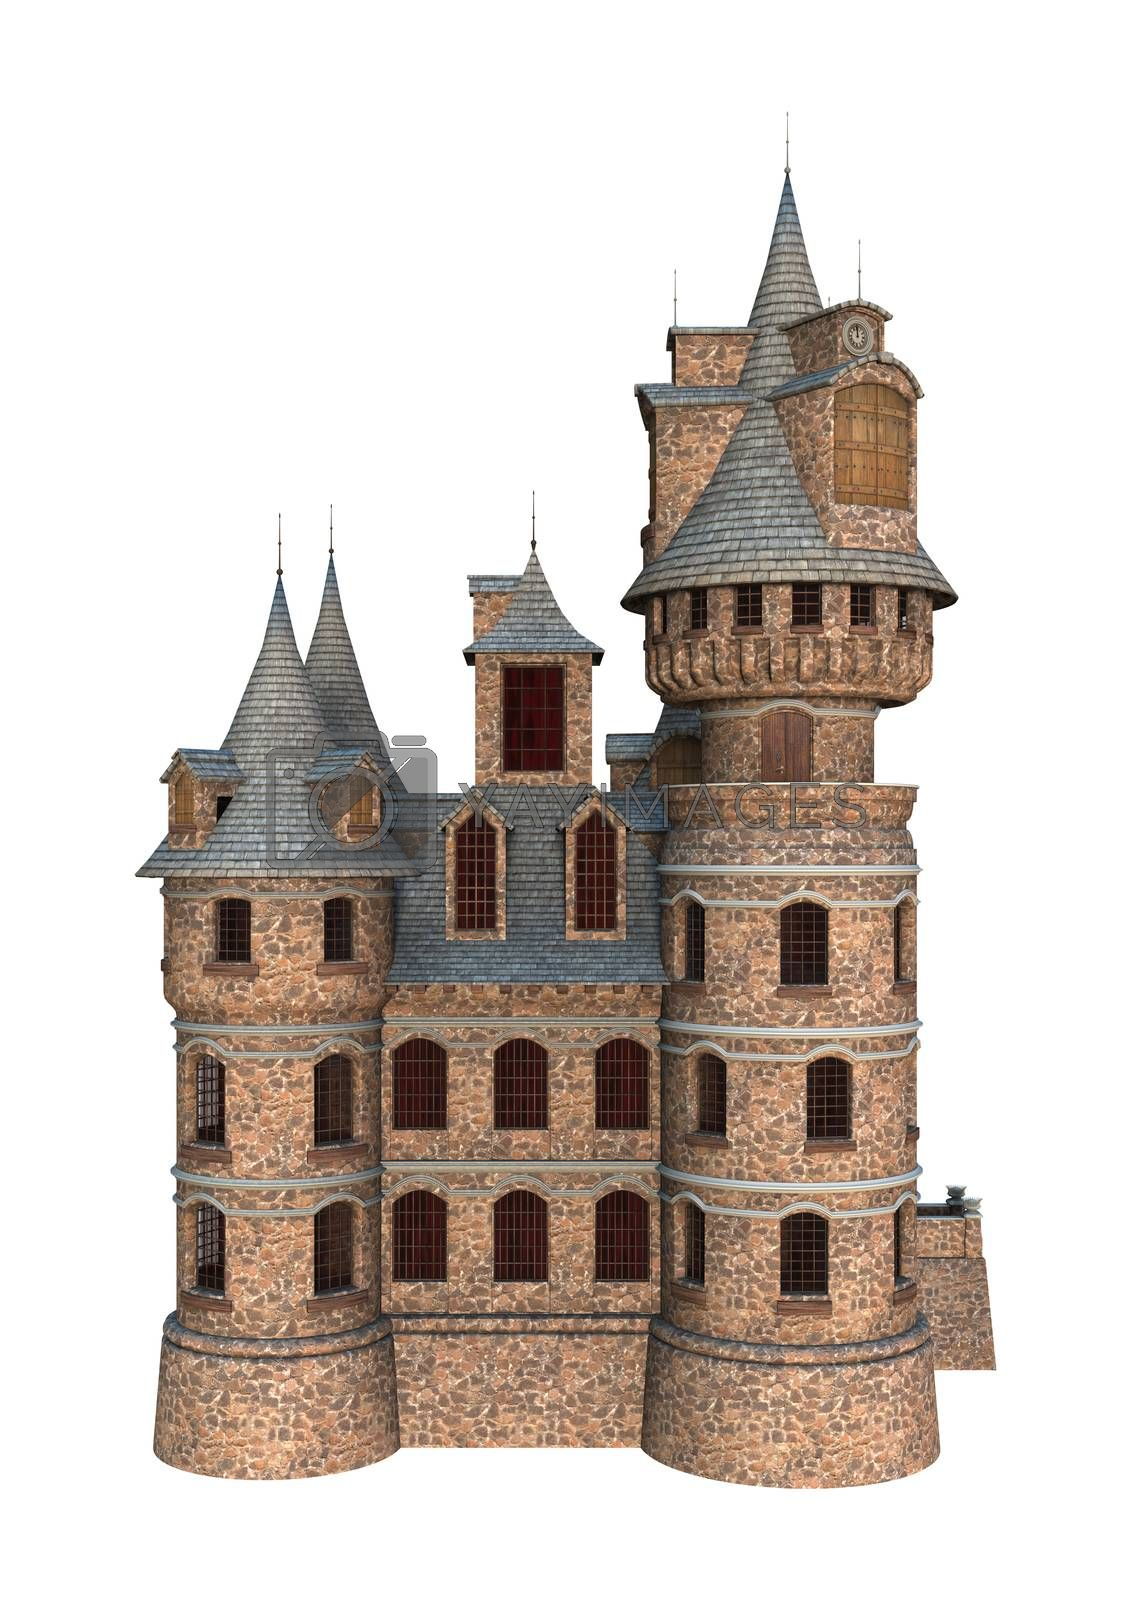 Royalty free image of Fairytale Castle by Vac